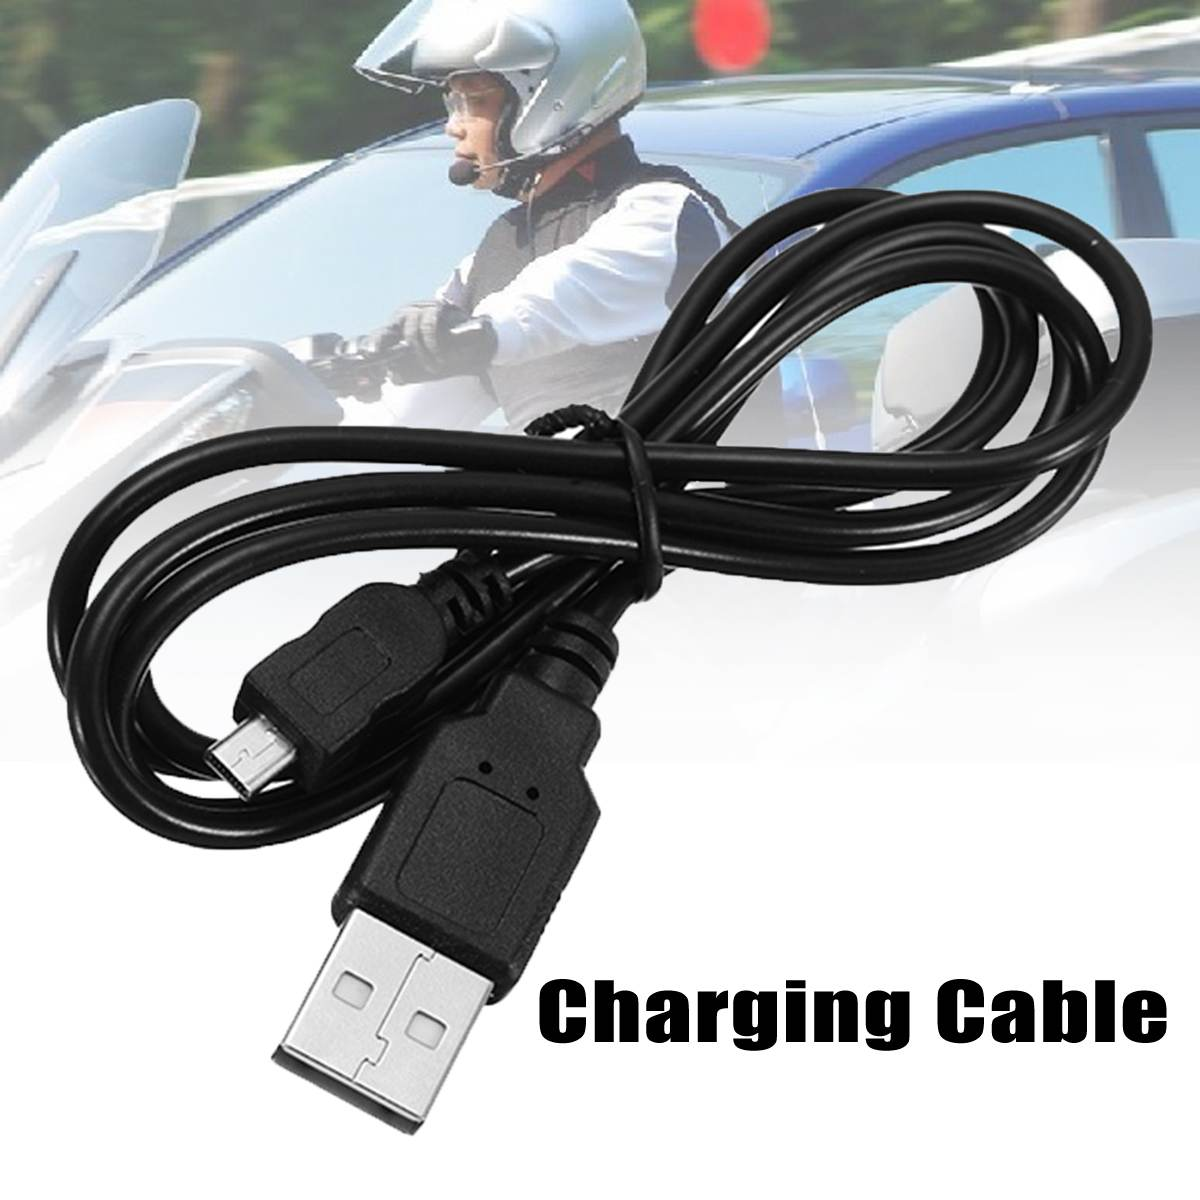 Motorcycle Helmet Intercom Charging Cable BT-S3 BT-S1 USB Charge Line Helmet Headset Charging Cable for BT-S2 , BT-S3 and BT-S1(China)